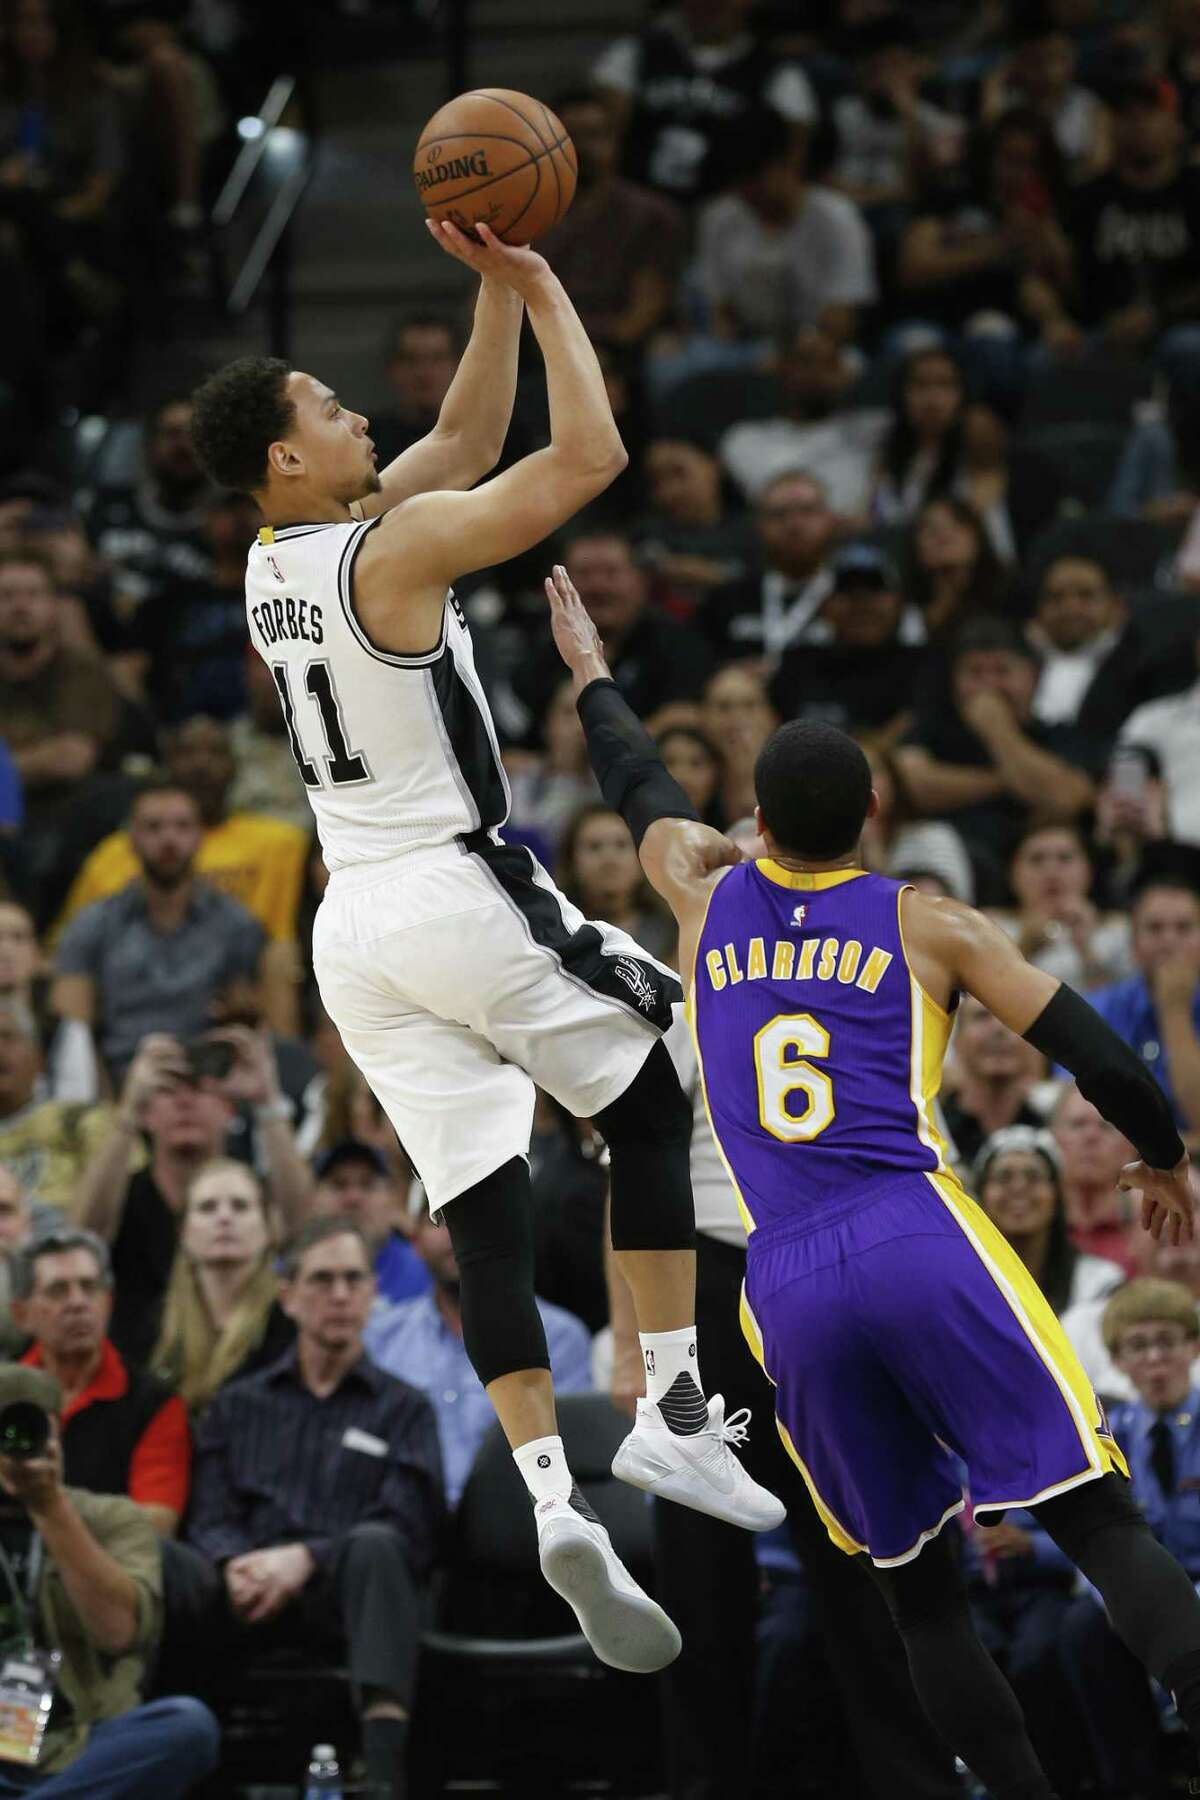 Spurs' Bryn Forbes shoots against the Los Angeles Lakers' Jordan Clarkson (6) during their game at the AT&T Center on April 5, 2017.